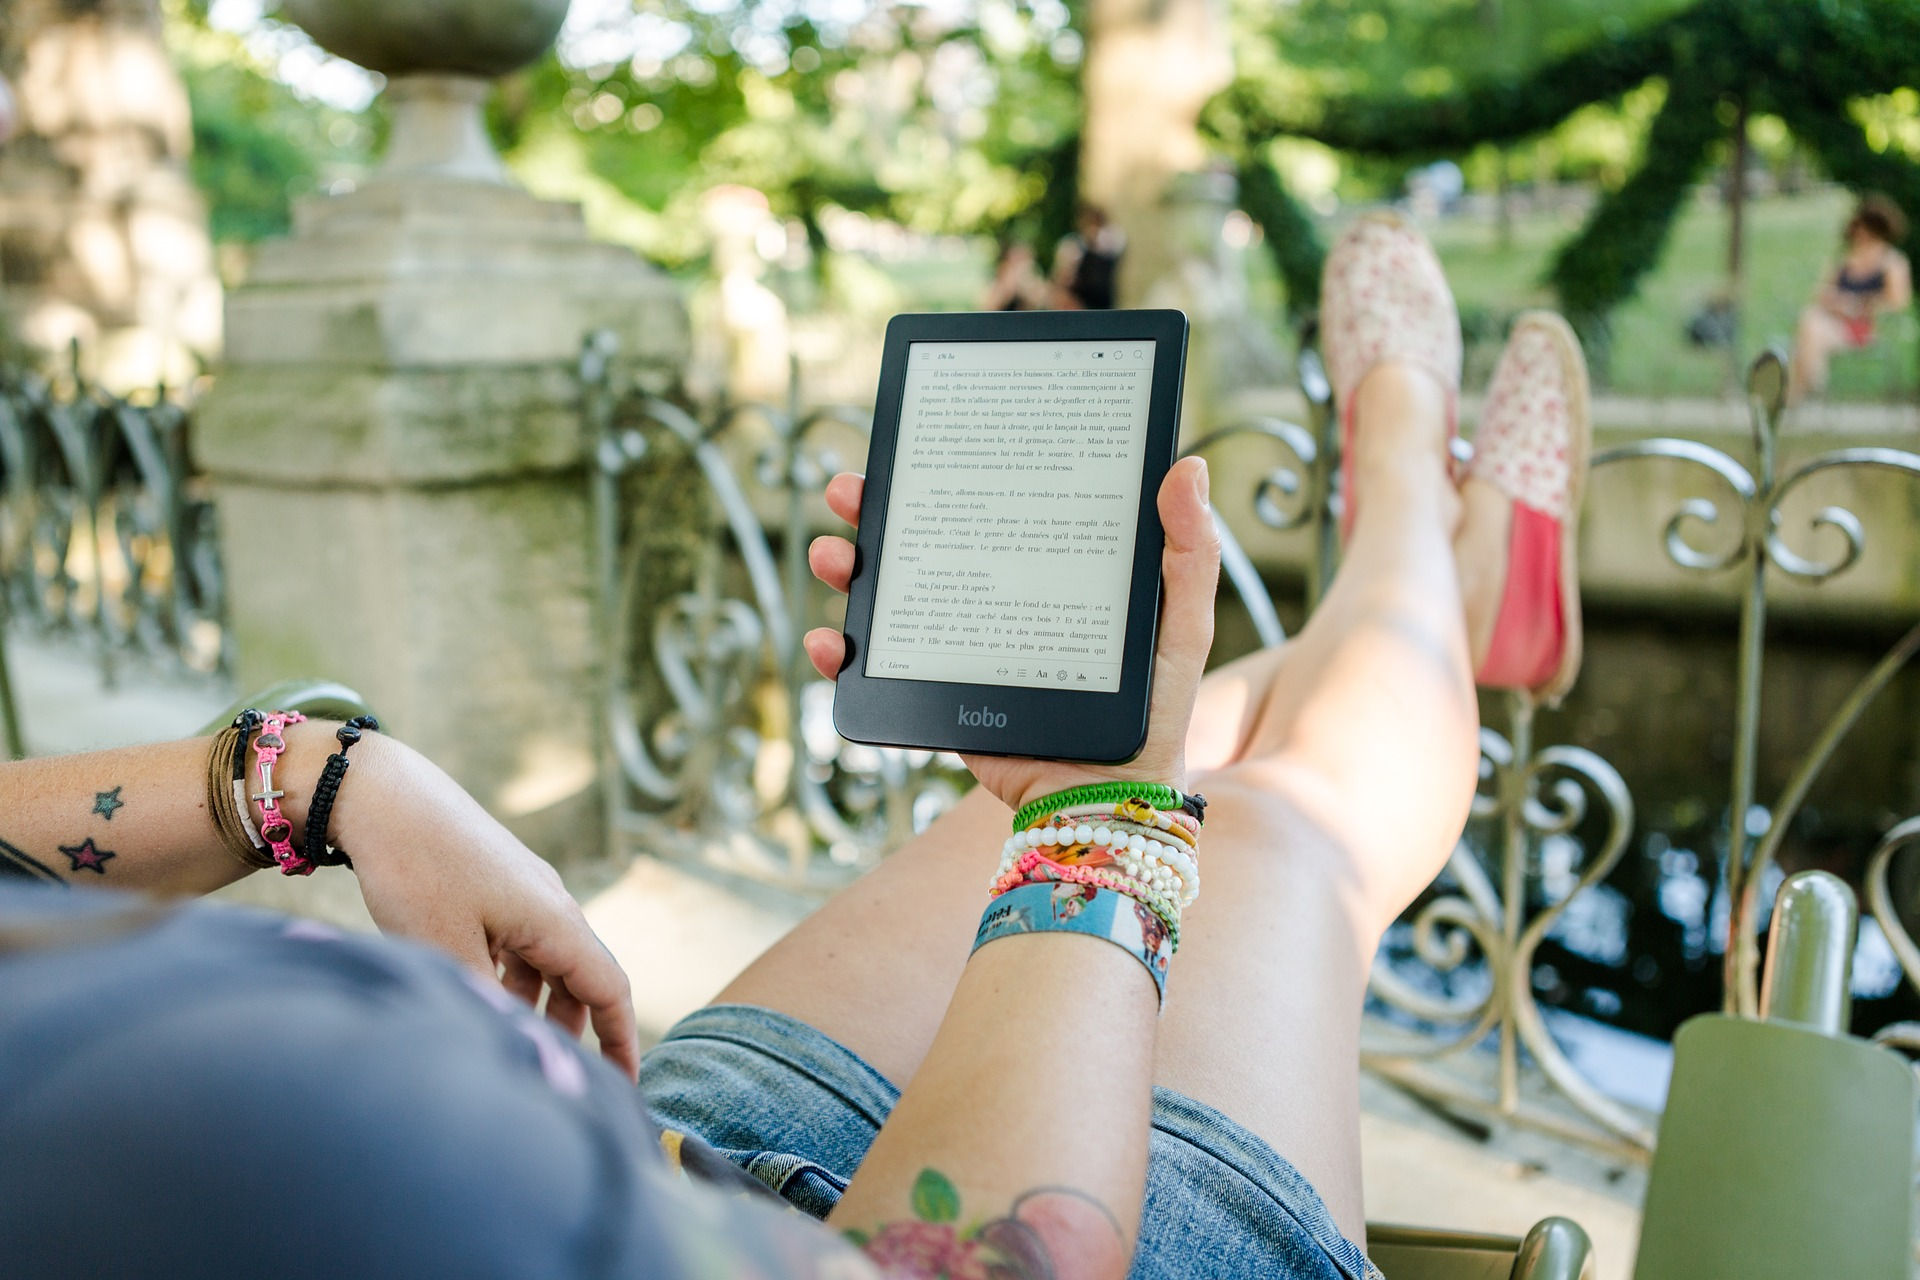 Summer Reading in the Park